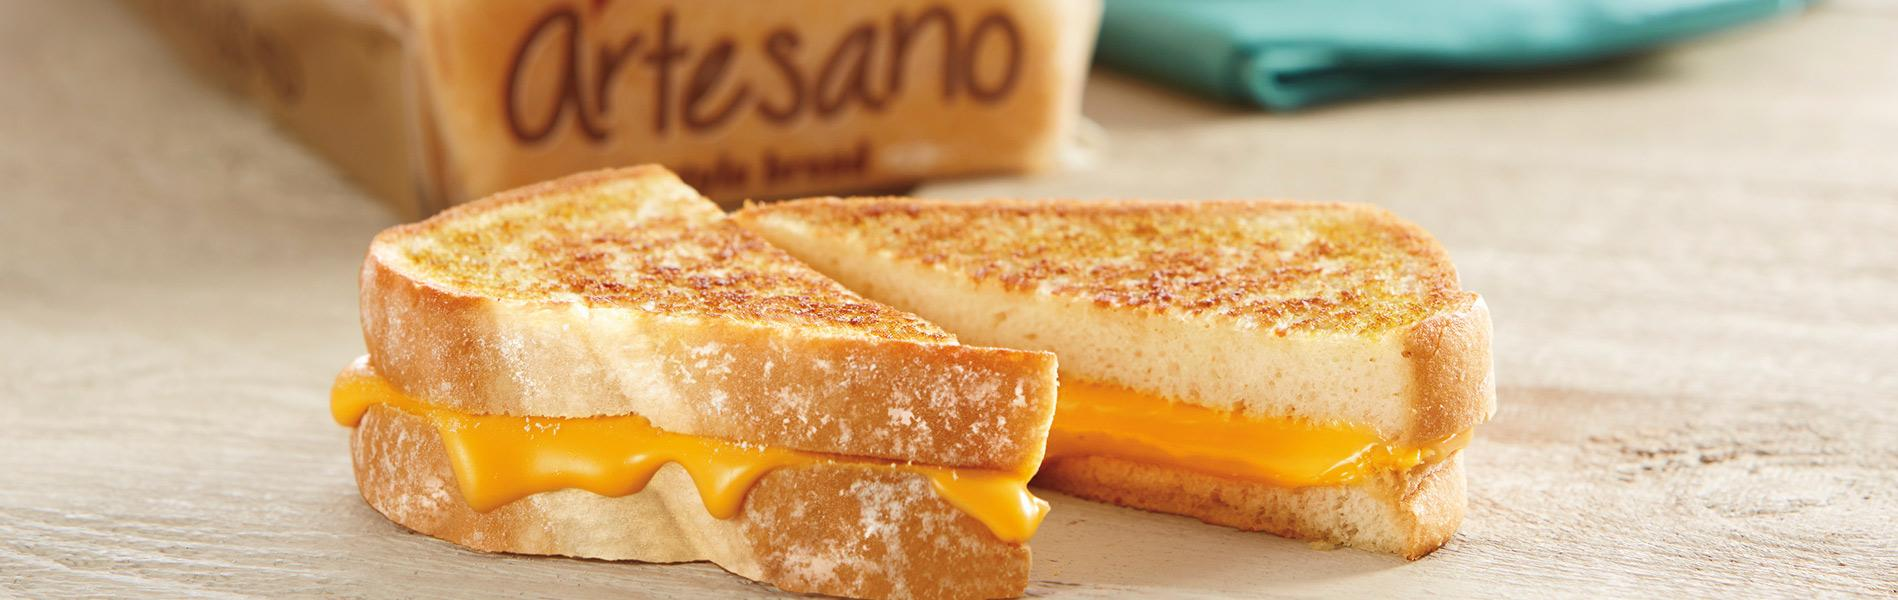 Grilled Cheese Sandwich made with Artesano Bread